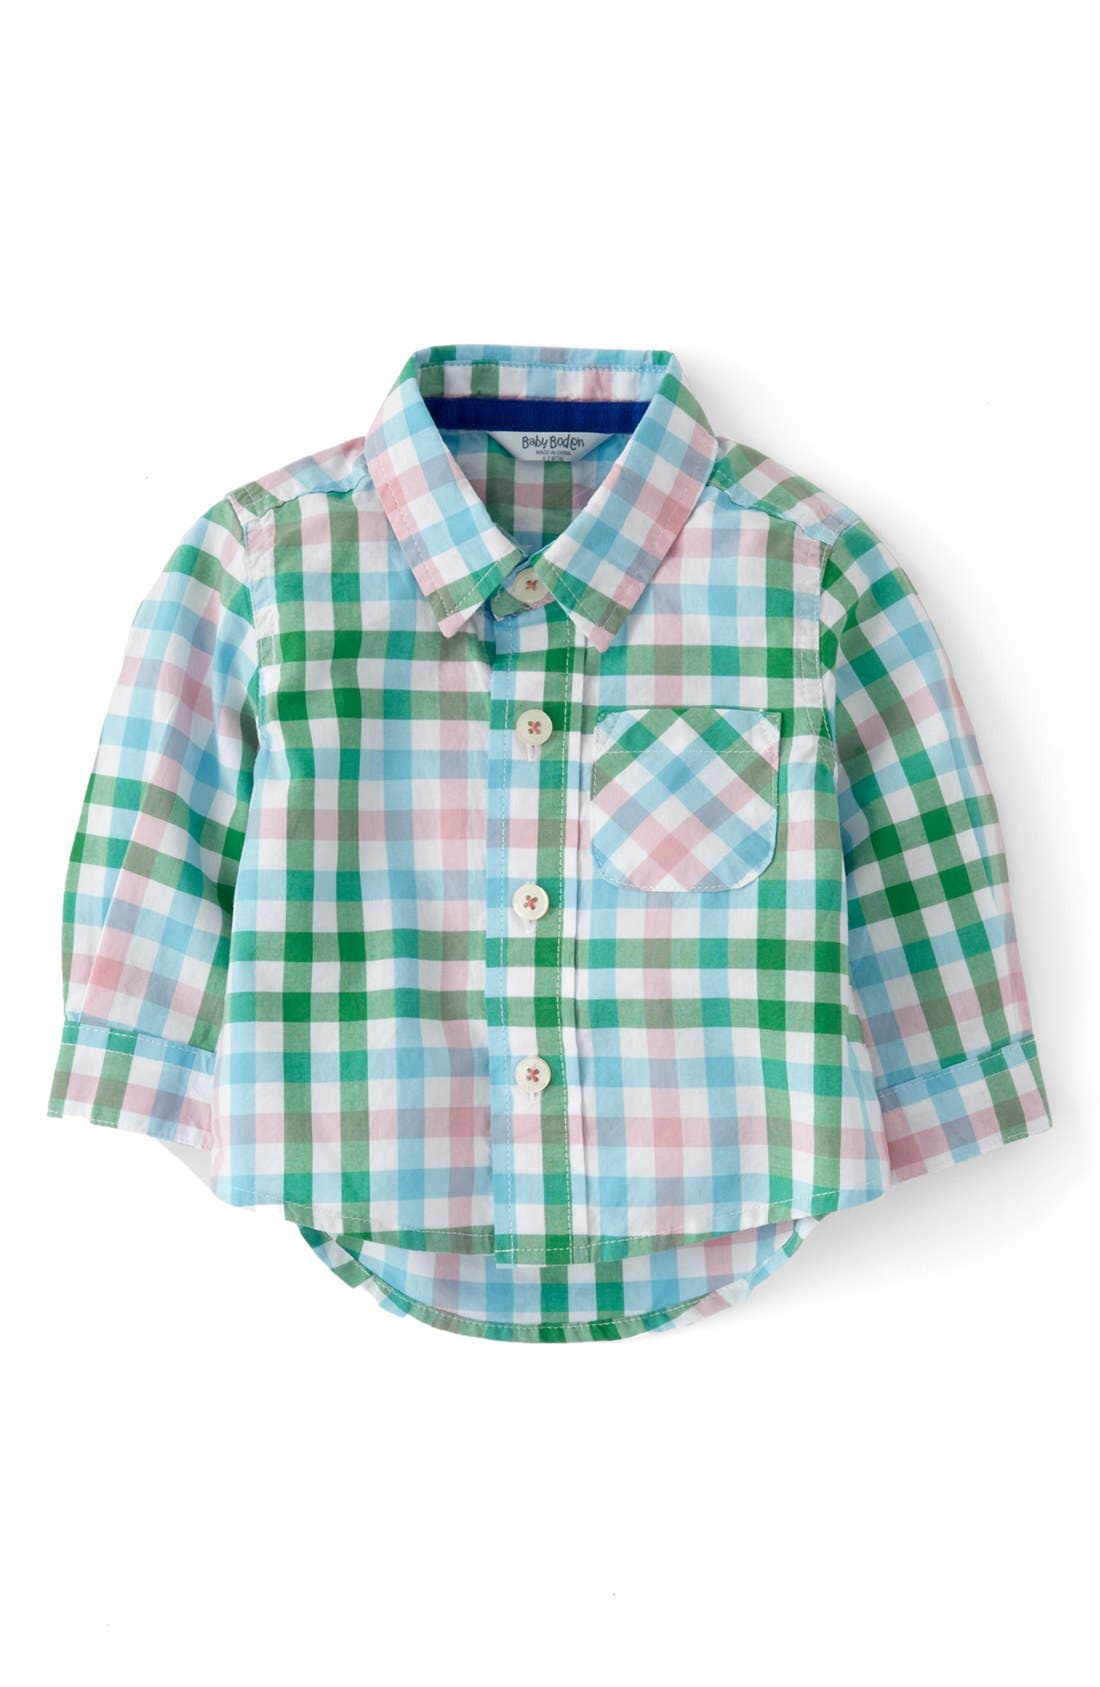 Alternate Image 1 Selected - Mini Boden 'Laundered' Woven Shirt (Baby Boys)